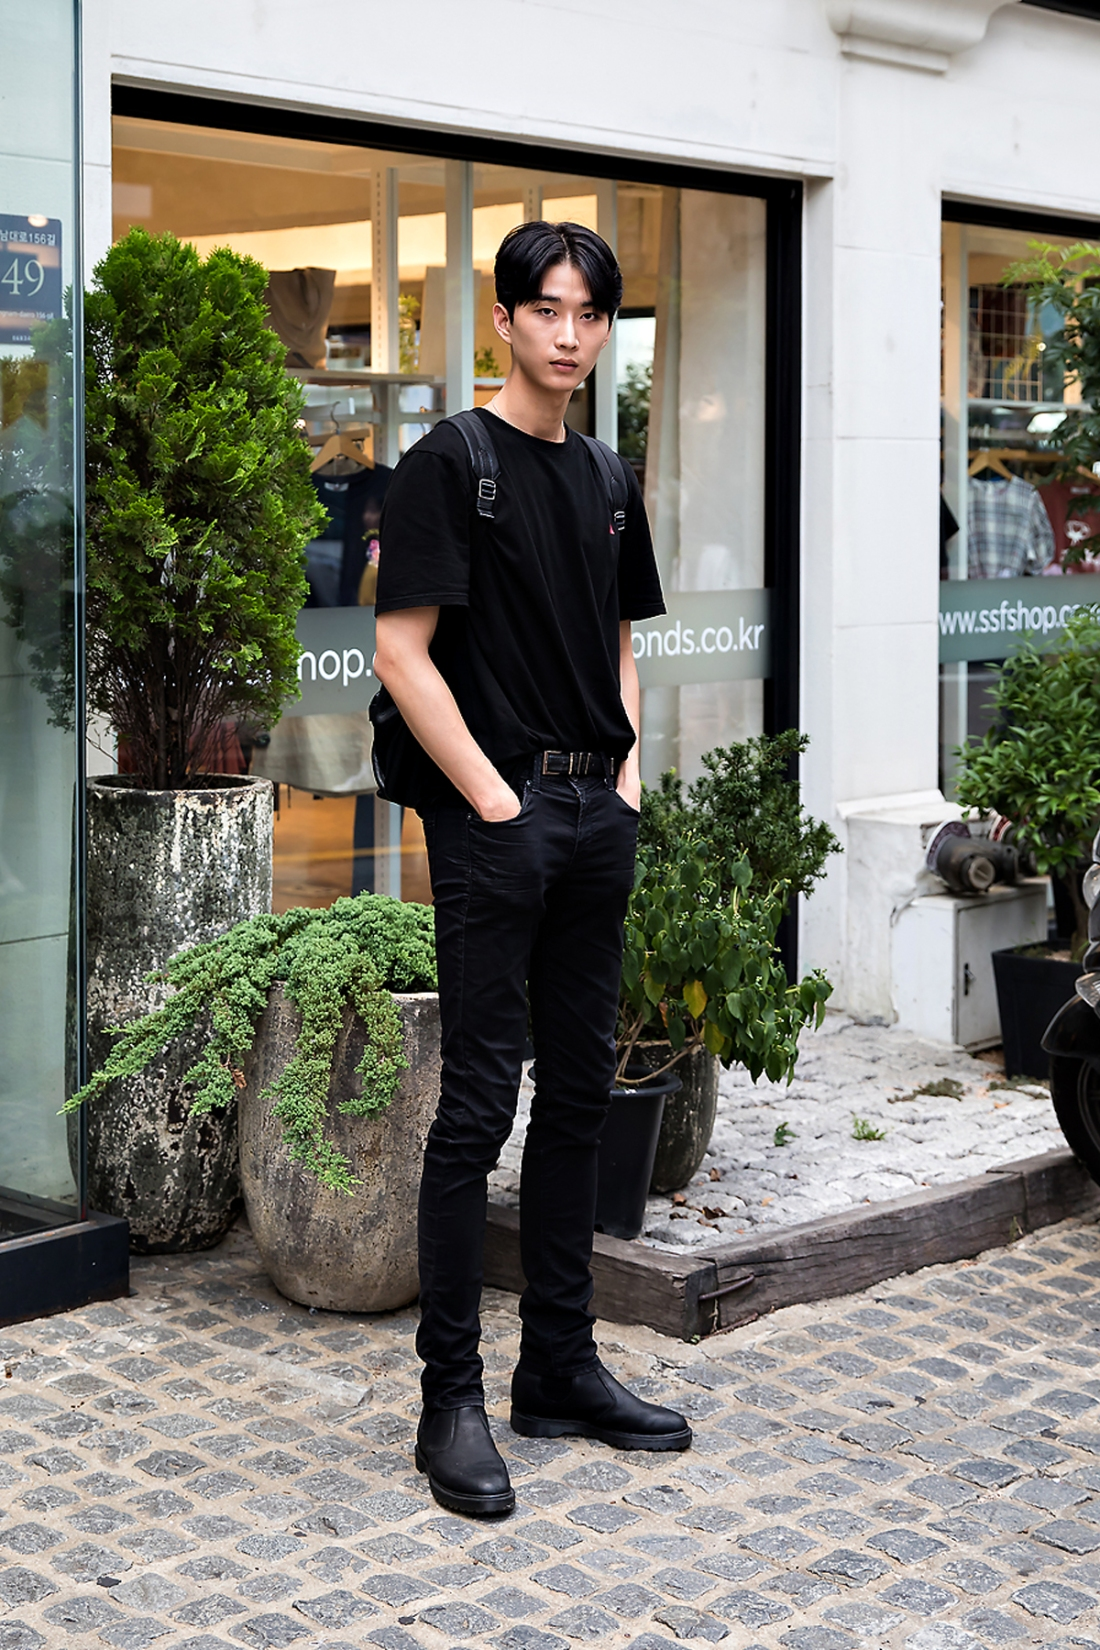 Yoo Hyunjong, Street Fashion 2017 in Seoul.jpg